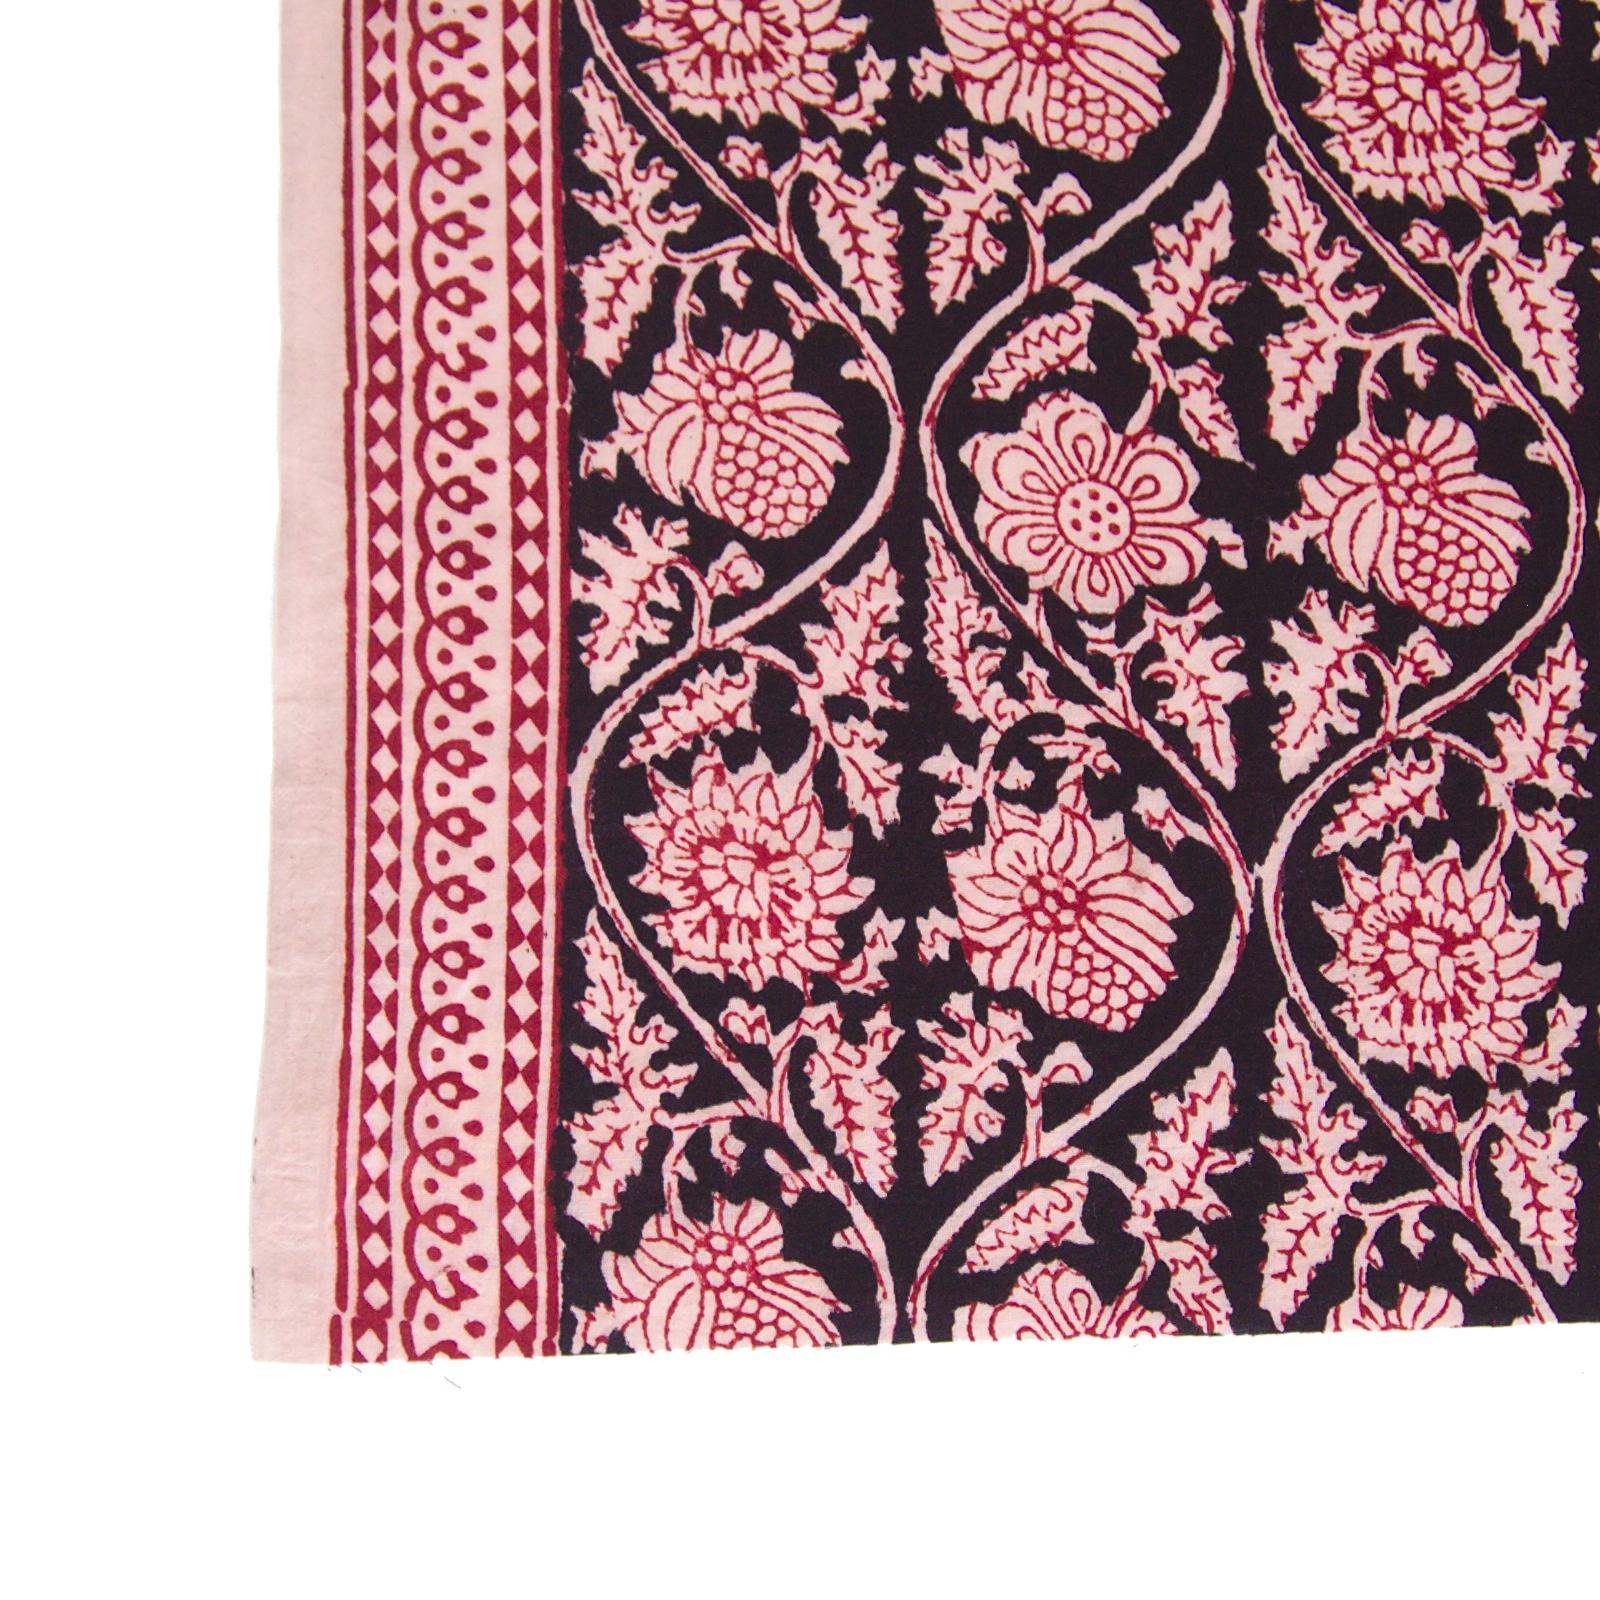 100% Block-Printed Cotton Fabric From India - Vinea Design - Iron Rust Black & Alizarin Red Dyes - Border - Live